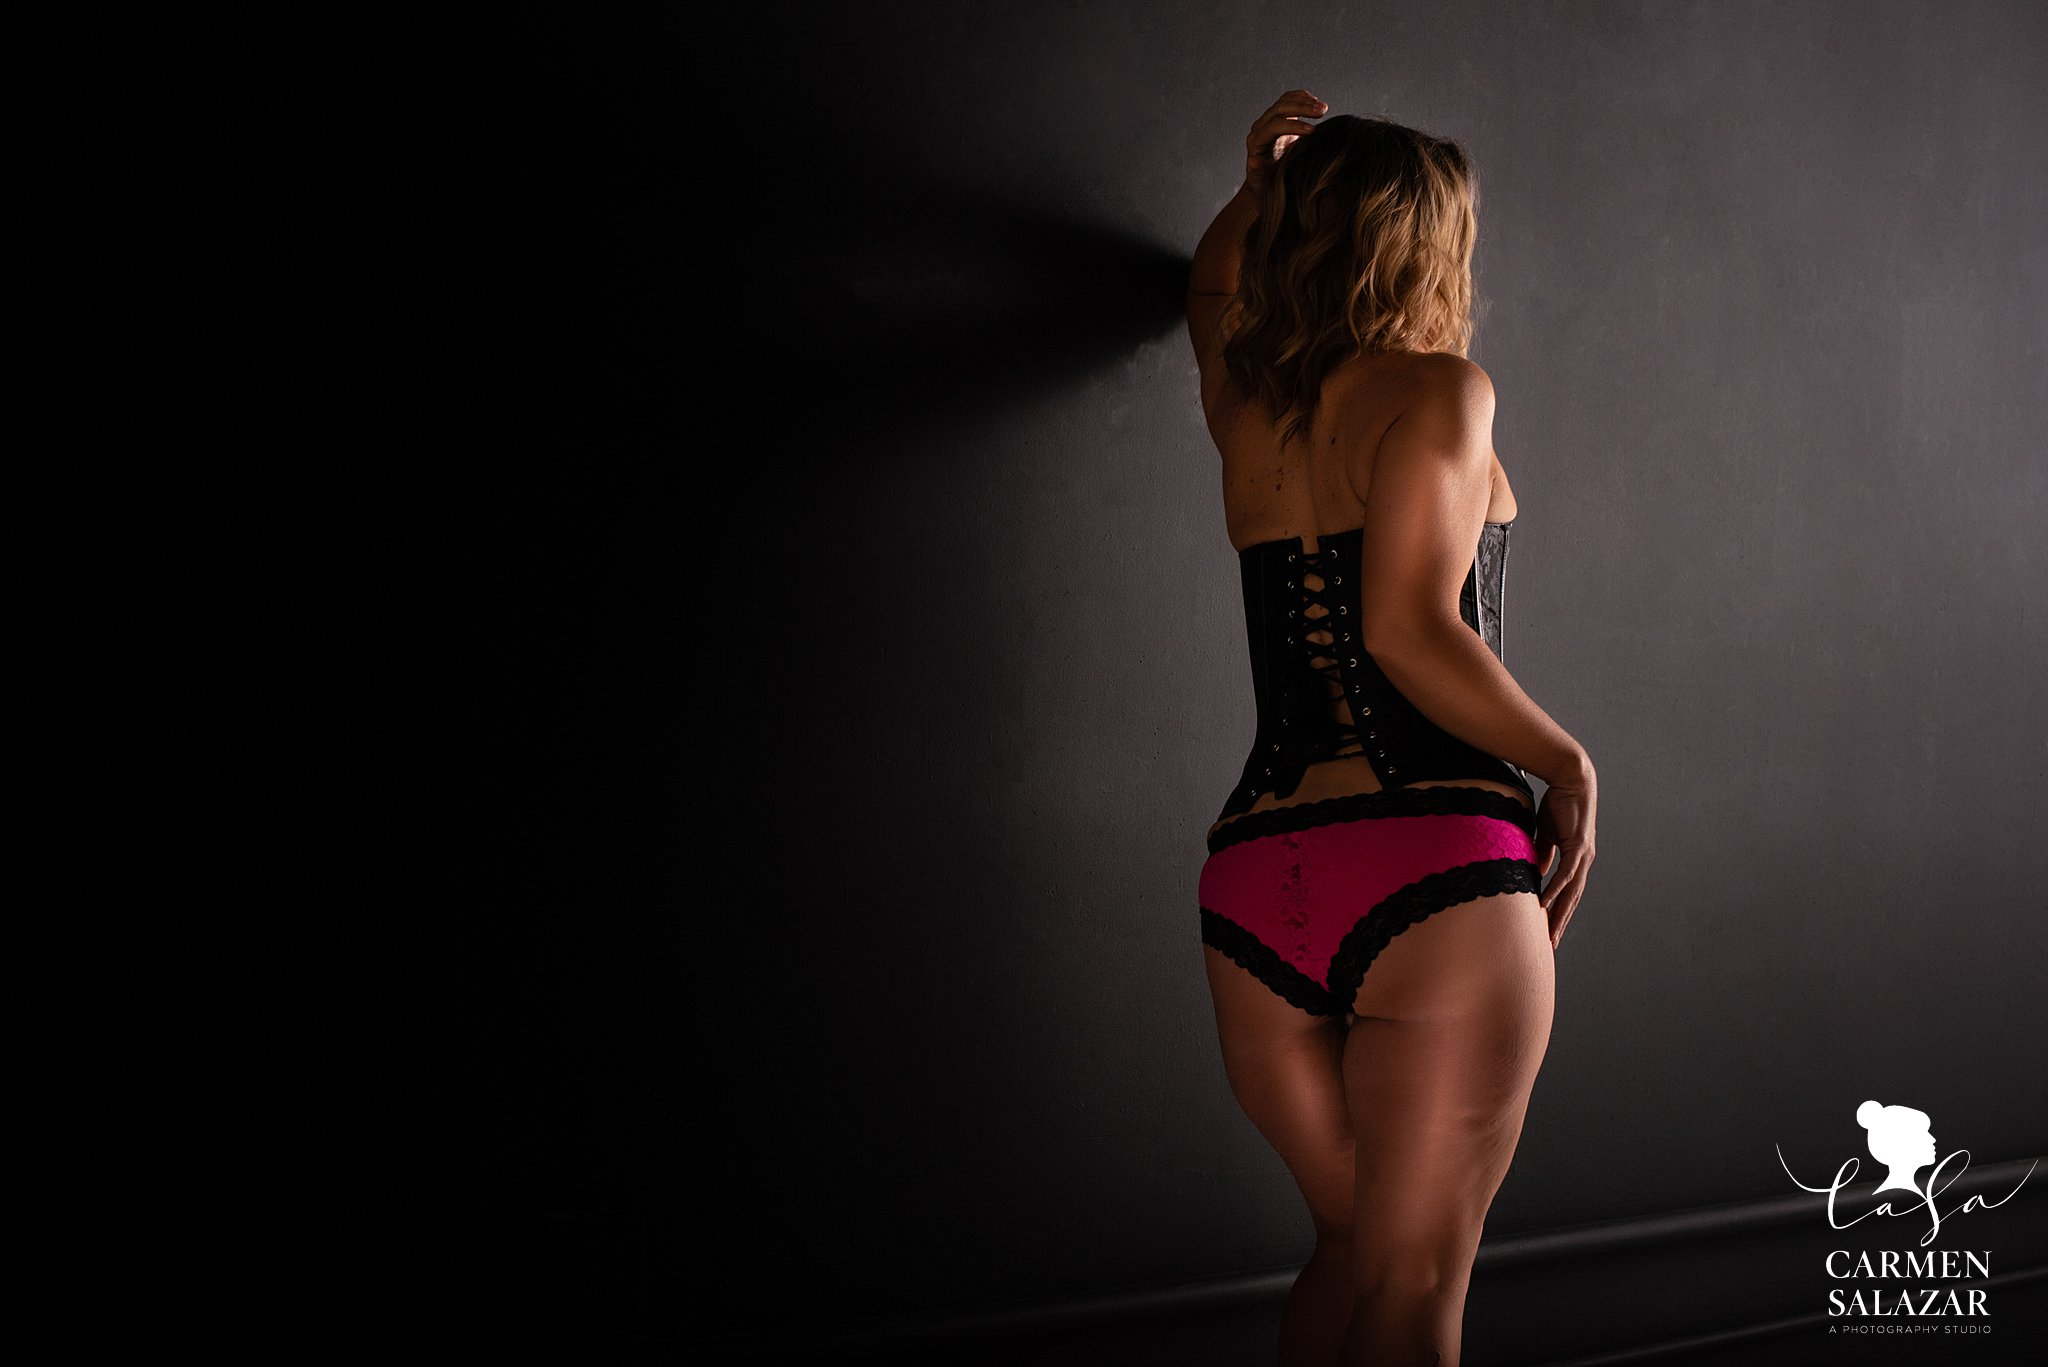 Moody and dark boudoir photo of a woman with pink panties